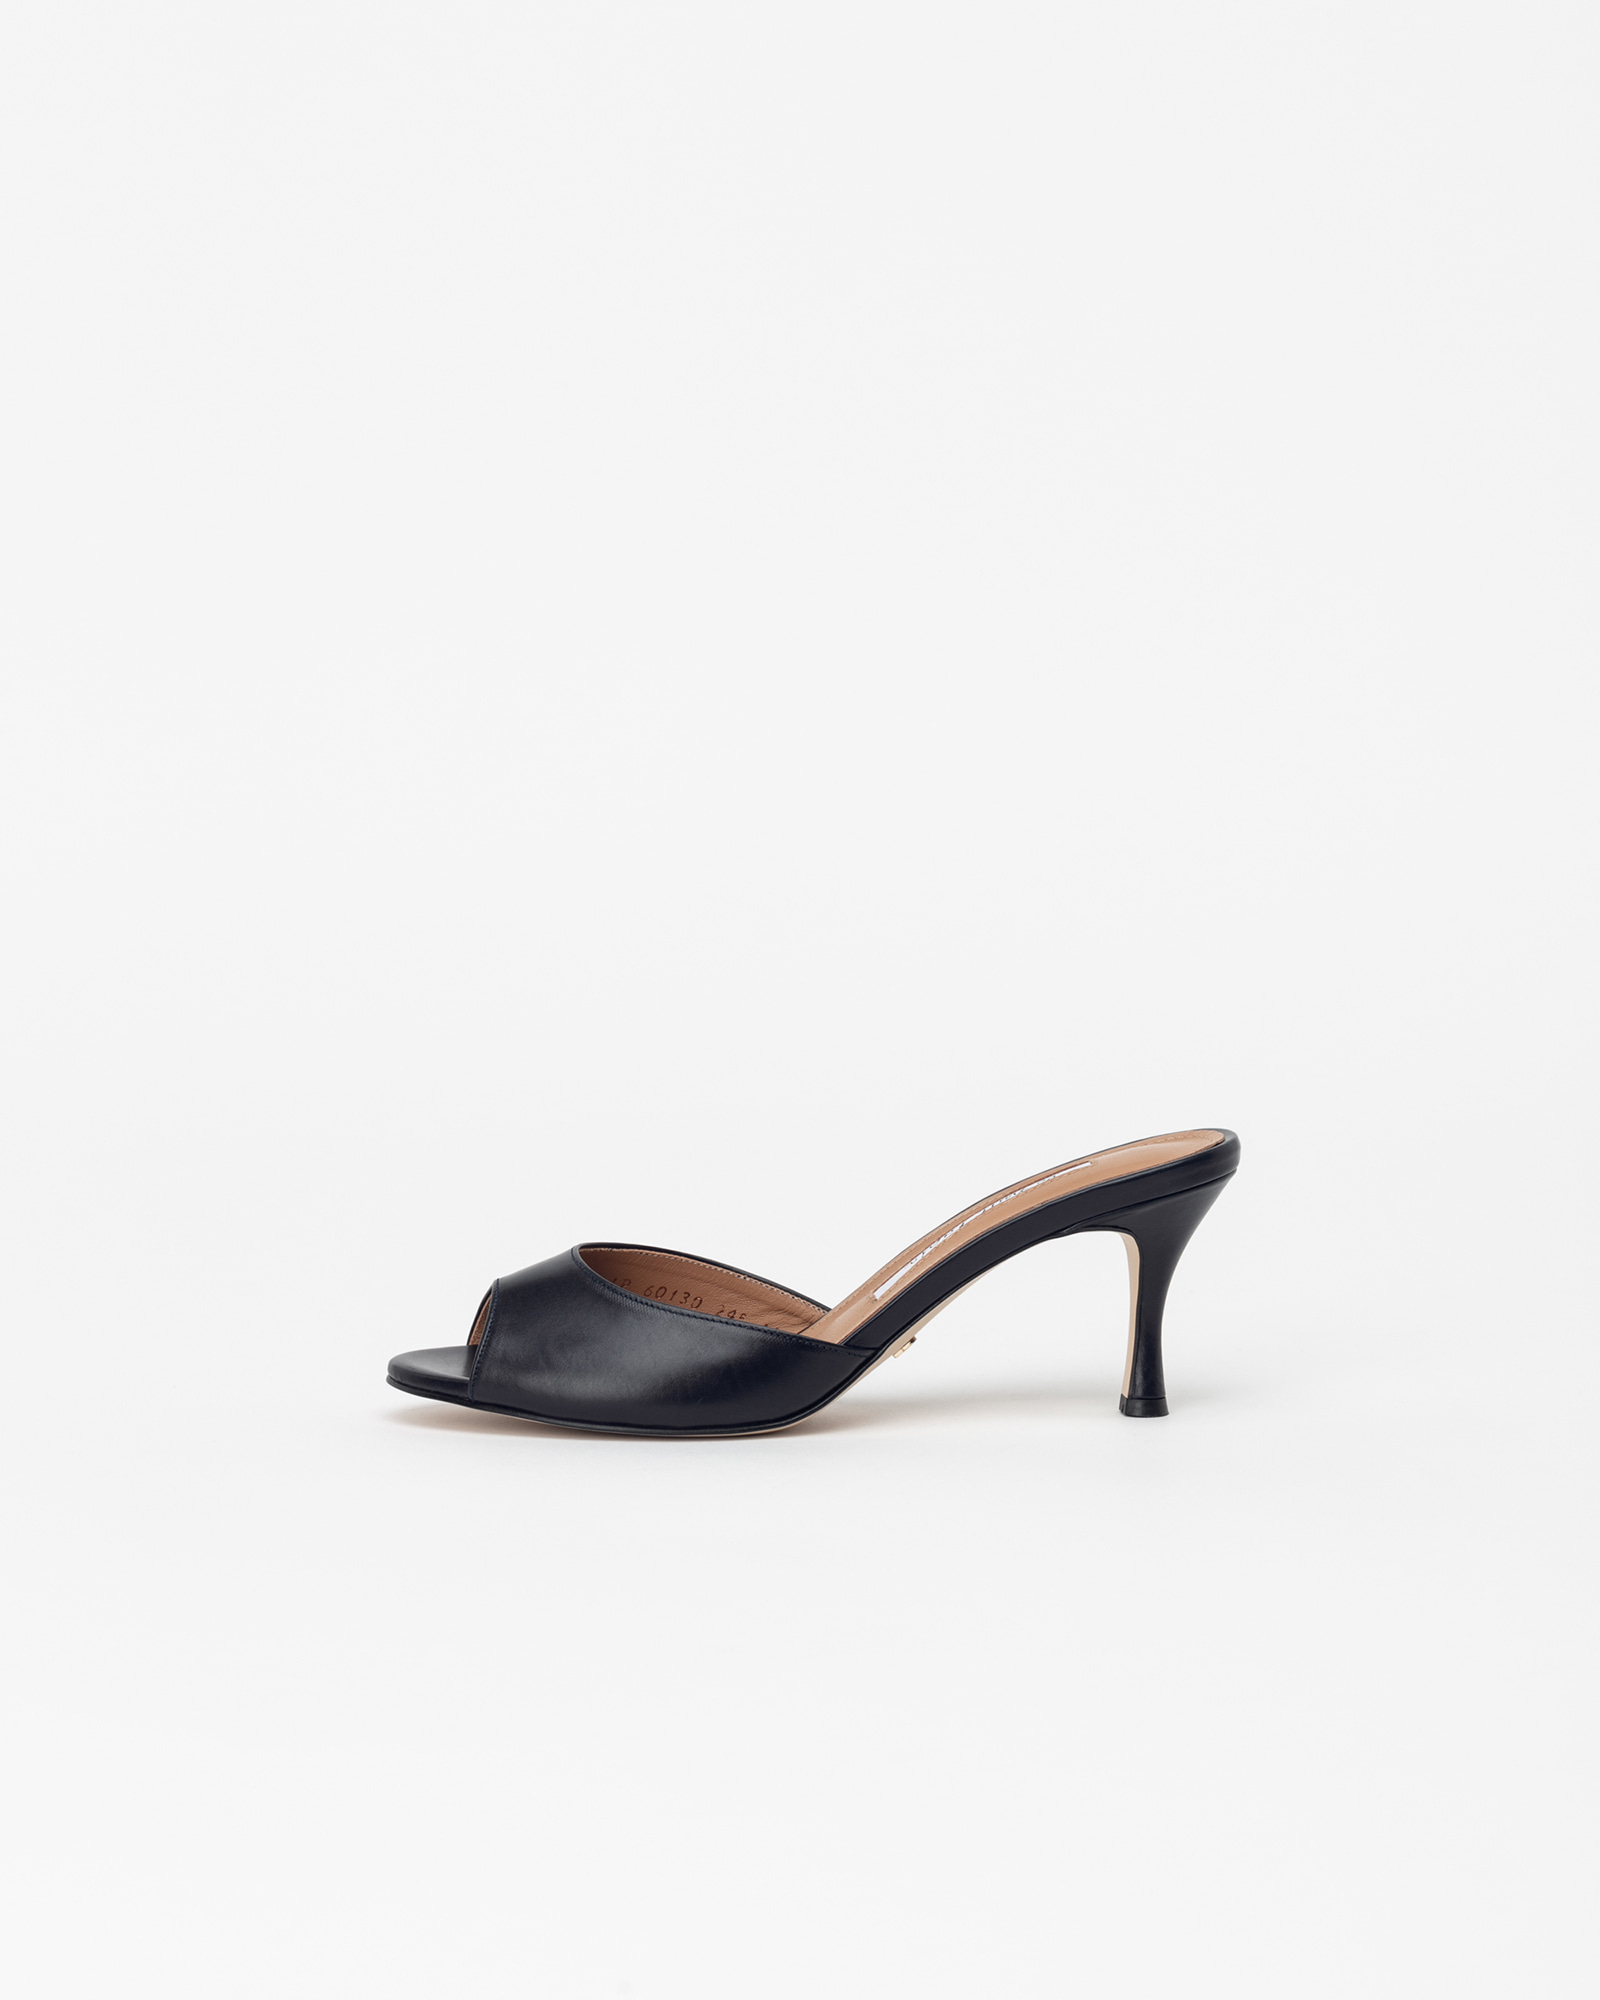 Chartres Mules in Black Baby Calf